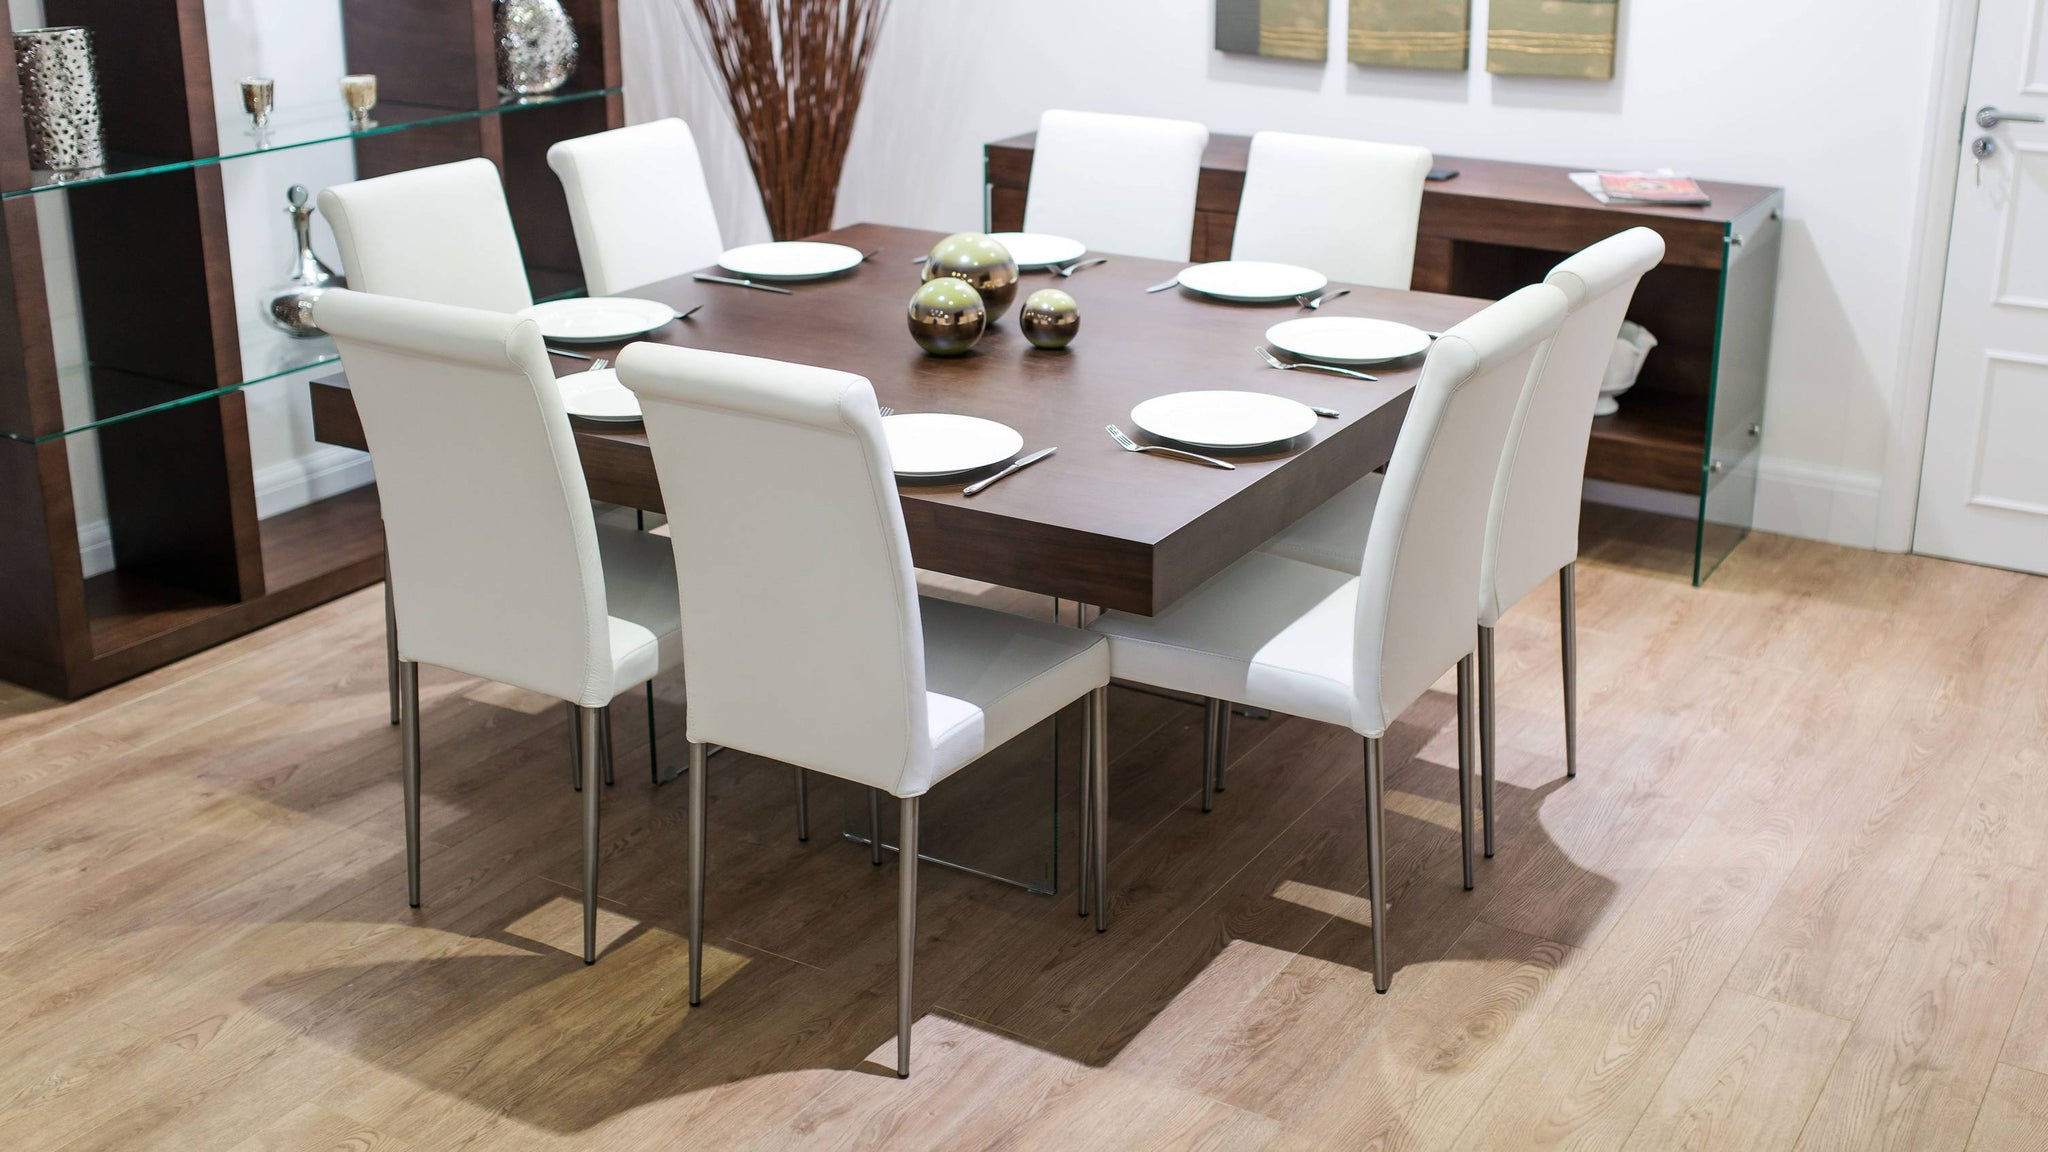 White Real Leather Dining Chairs and Square Dining Table